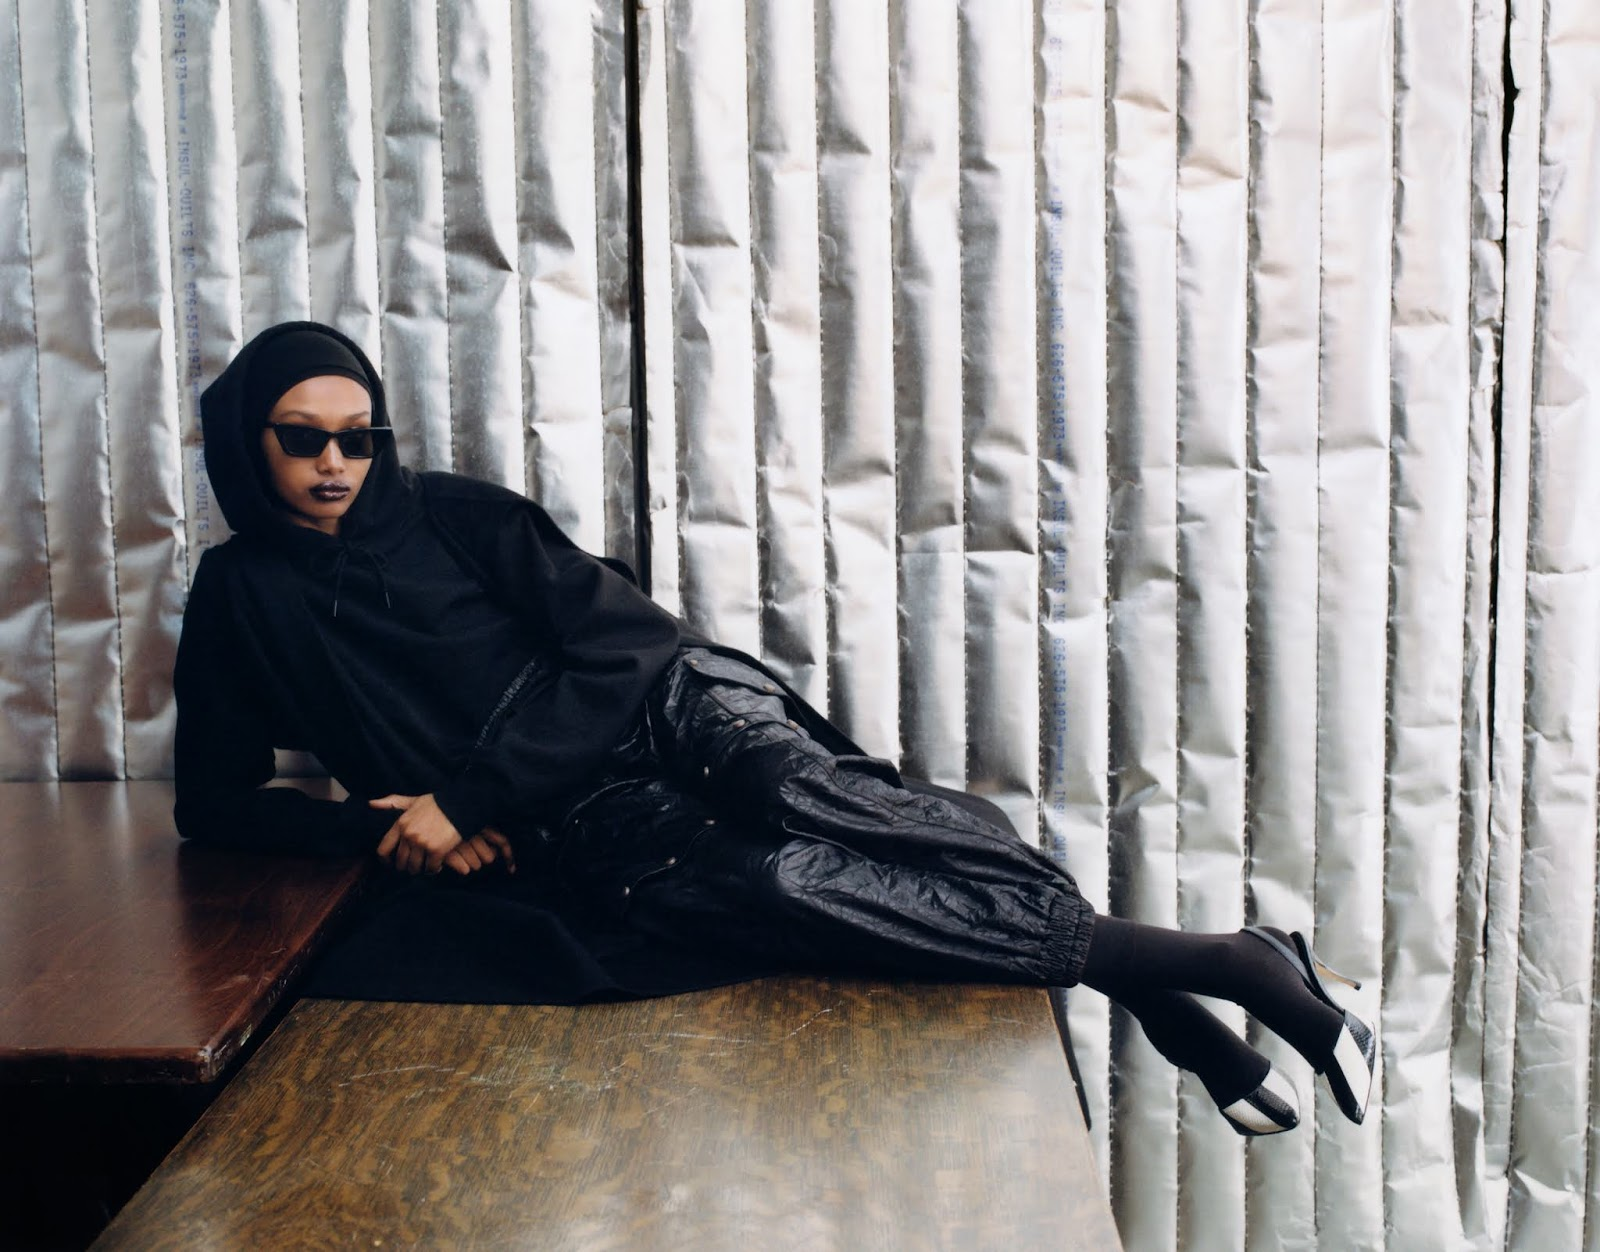 Ugbad Abdi by Zoe Ghertner. Cape Valentino. Hoodie Wardrobe NYC. Tracksuit bottoms Gucci. Headscarf Berwick St. Cloth Shop. Sunglasses Gentle Monster. Socks Falke. Shoes Manolo Blahnik.